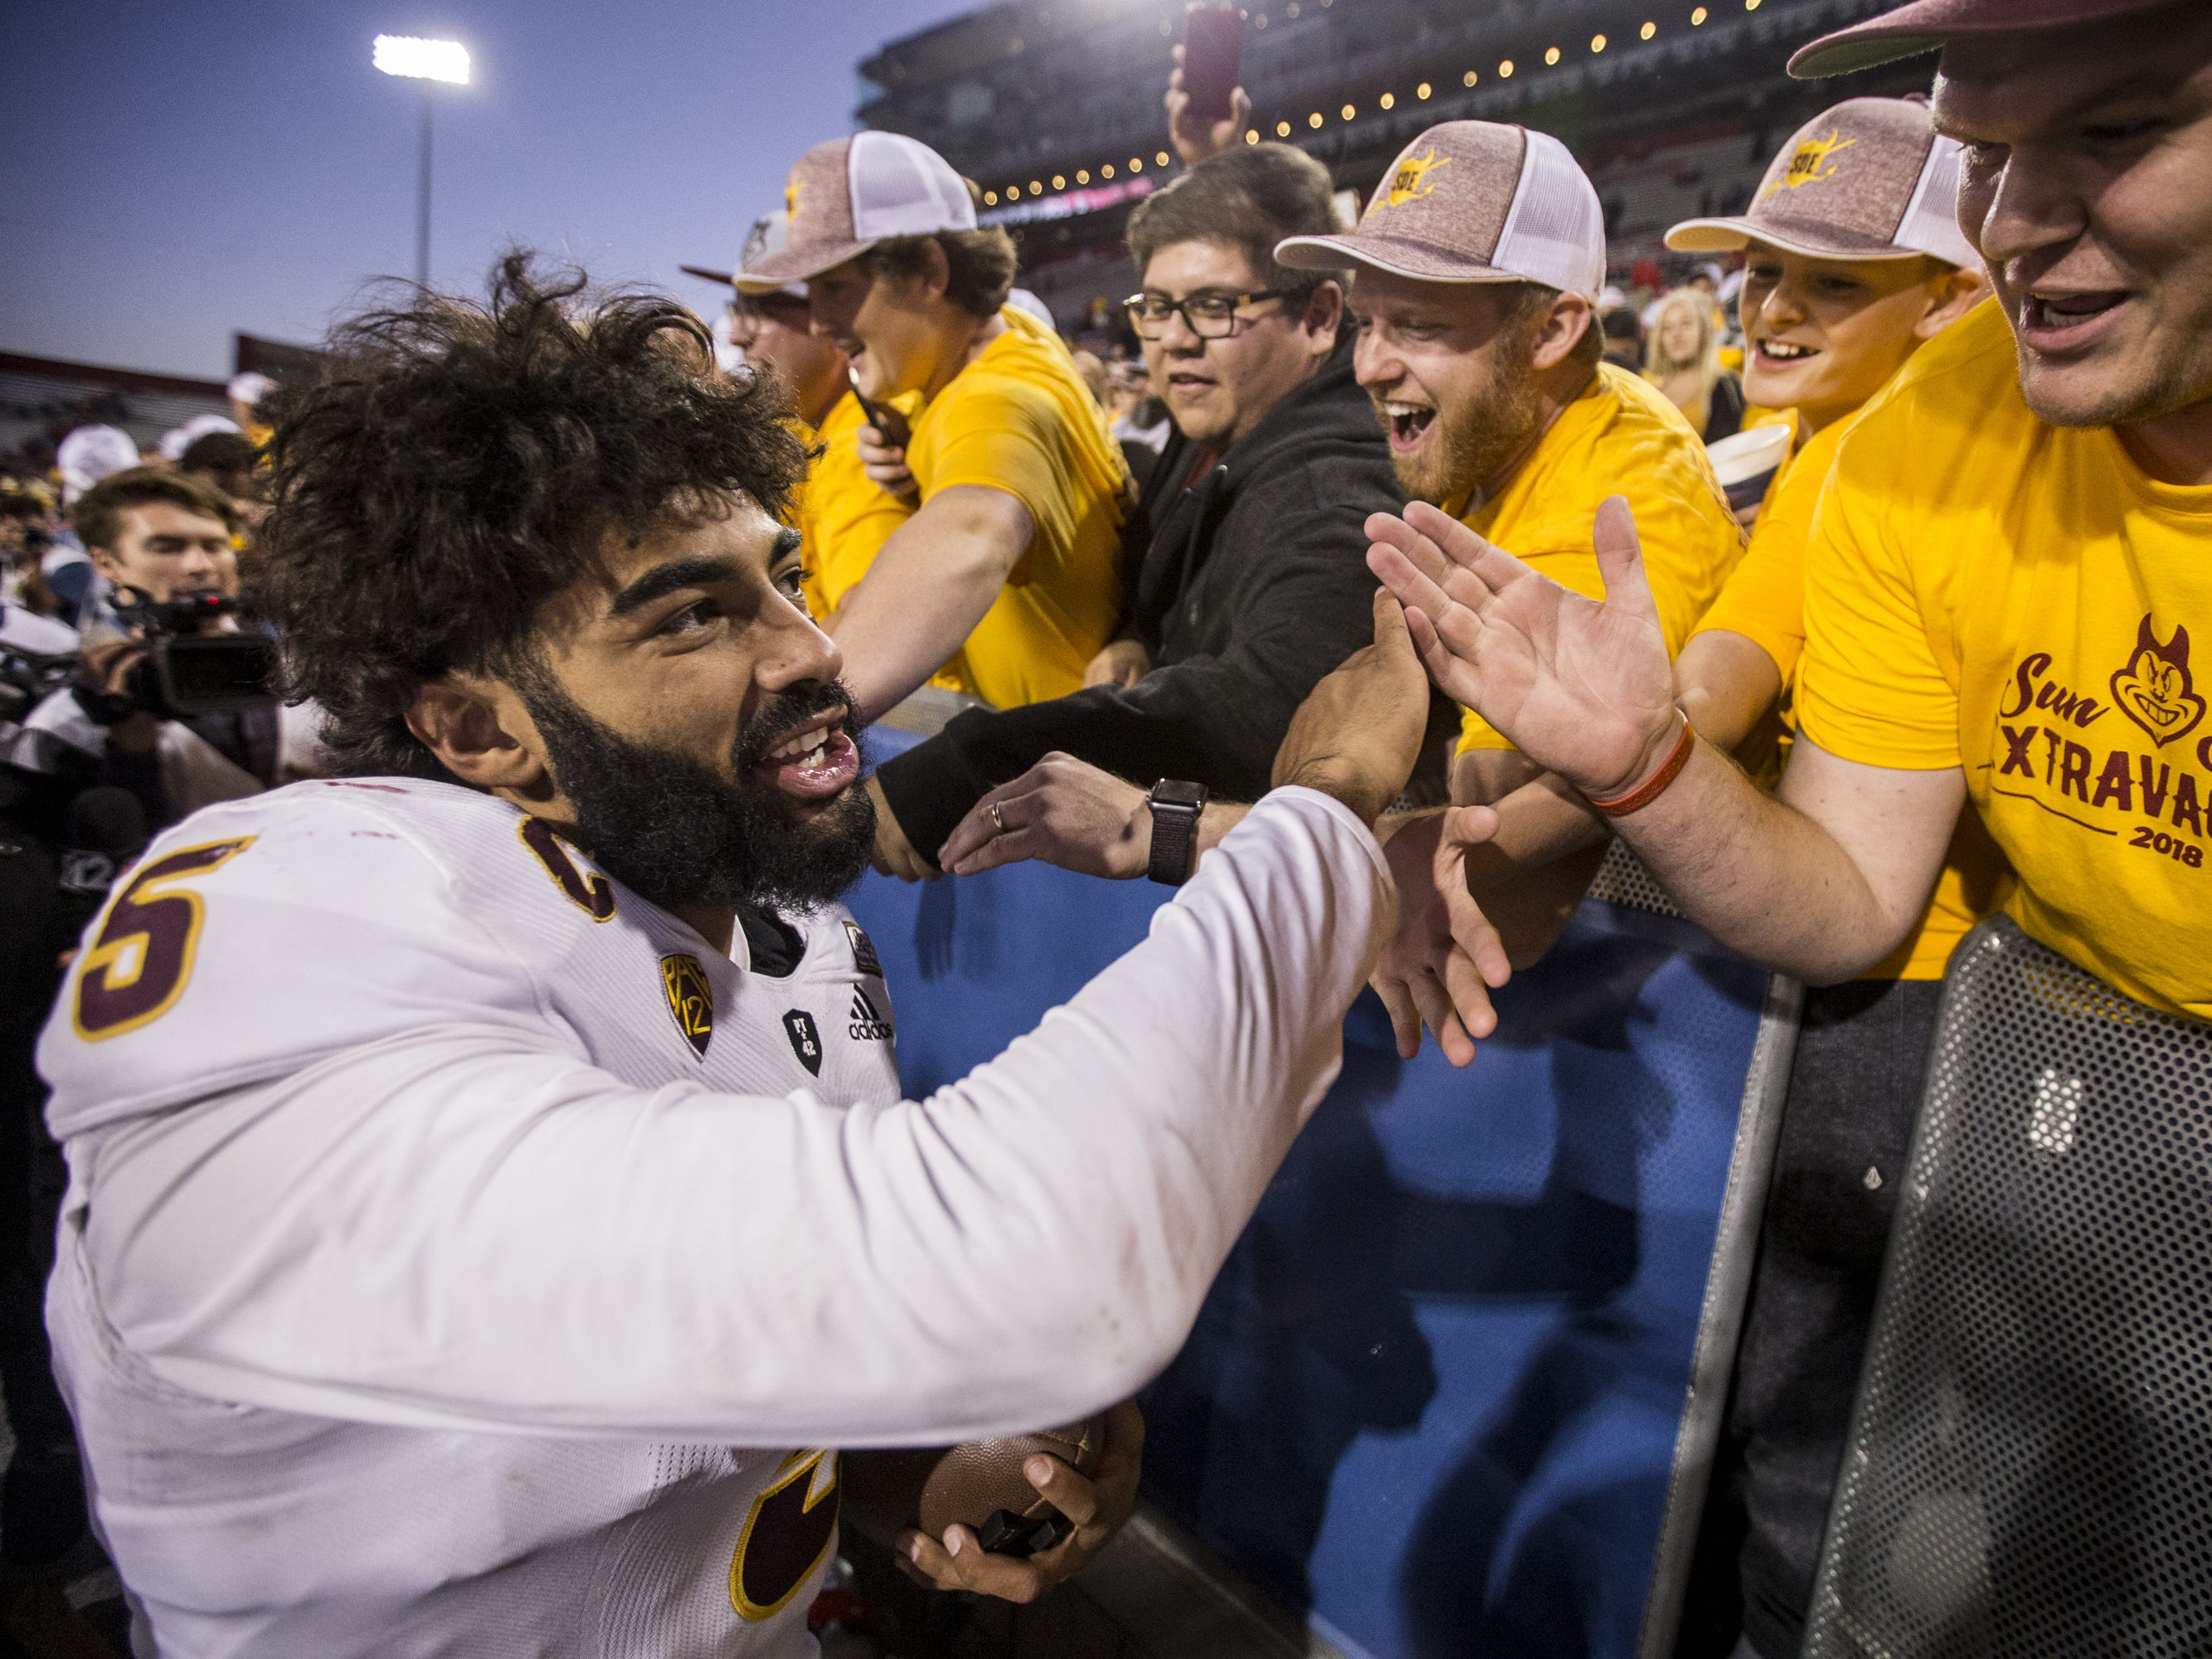 Arizona State's Manny Wilkins celebrates with fans after defeating Arizona for the Territorial Cup on Saturday, Nov. 24, 2018, at Arizona Stadium in Tucson, Ariz. Arizona State won, 41-40.